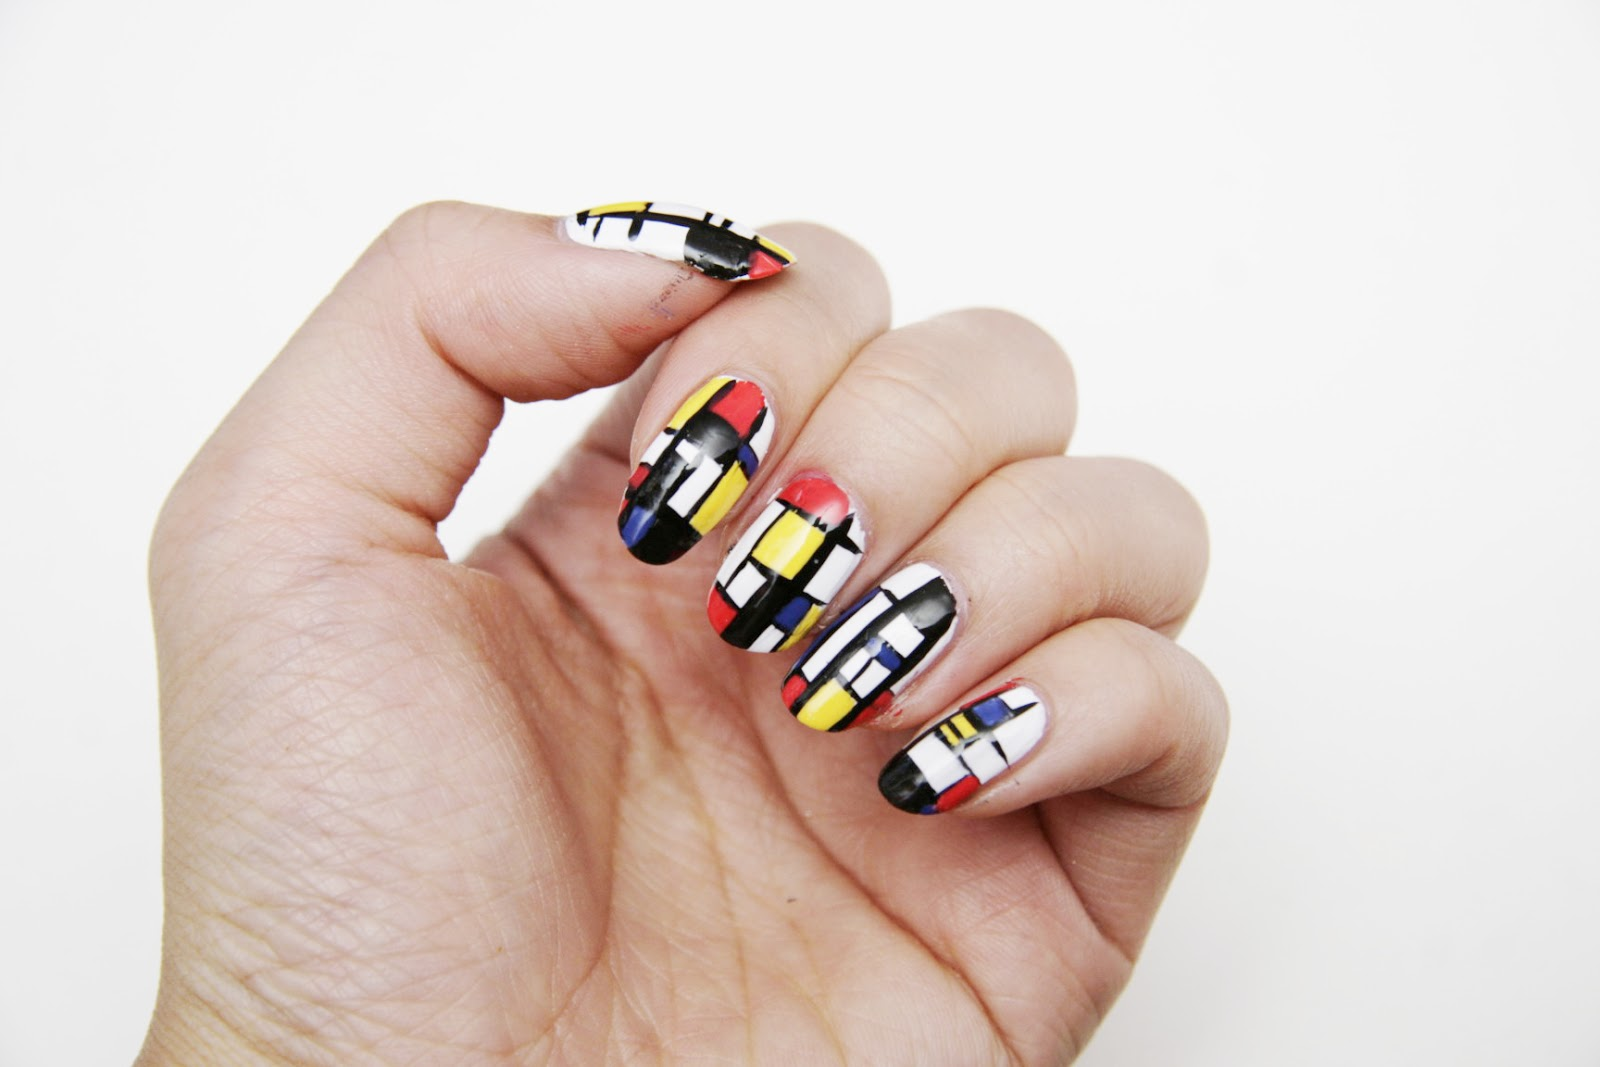 fun size beauty: #MANIMONDAY: Piet Mondrian Nail Art II